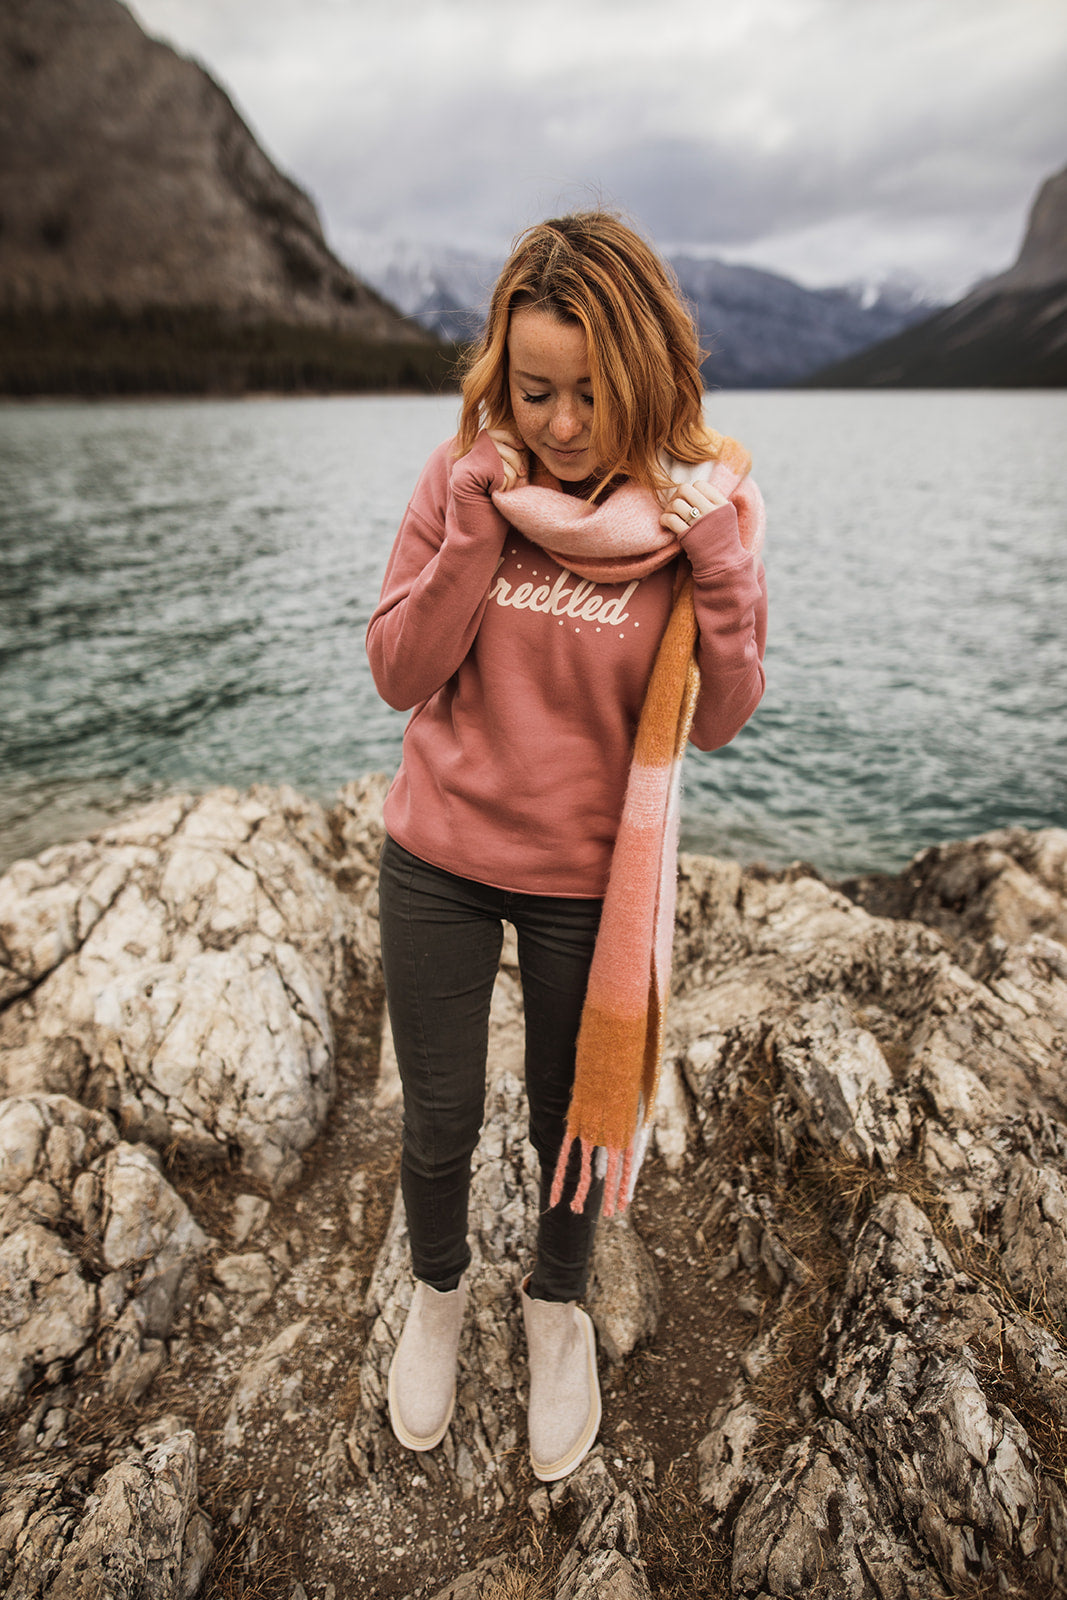 Mauve Freckled Sweatshirt